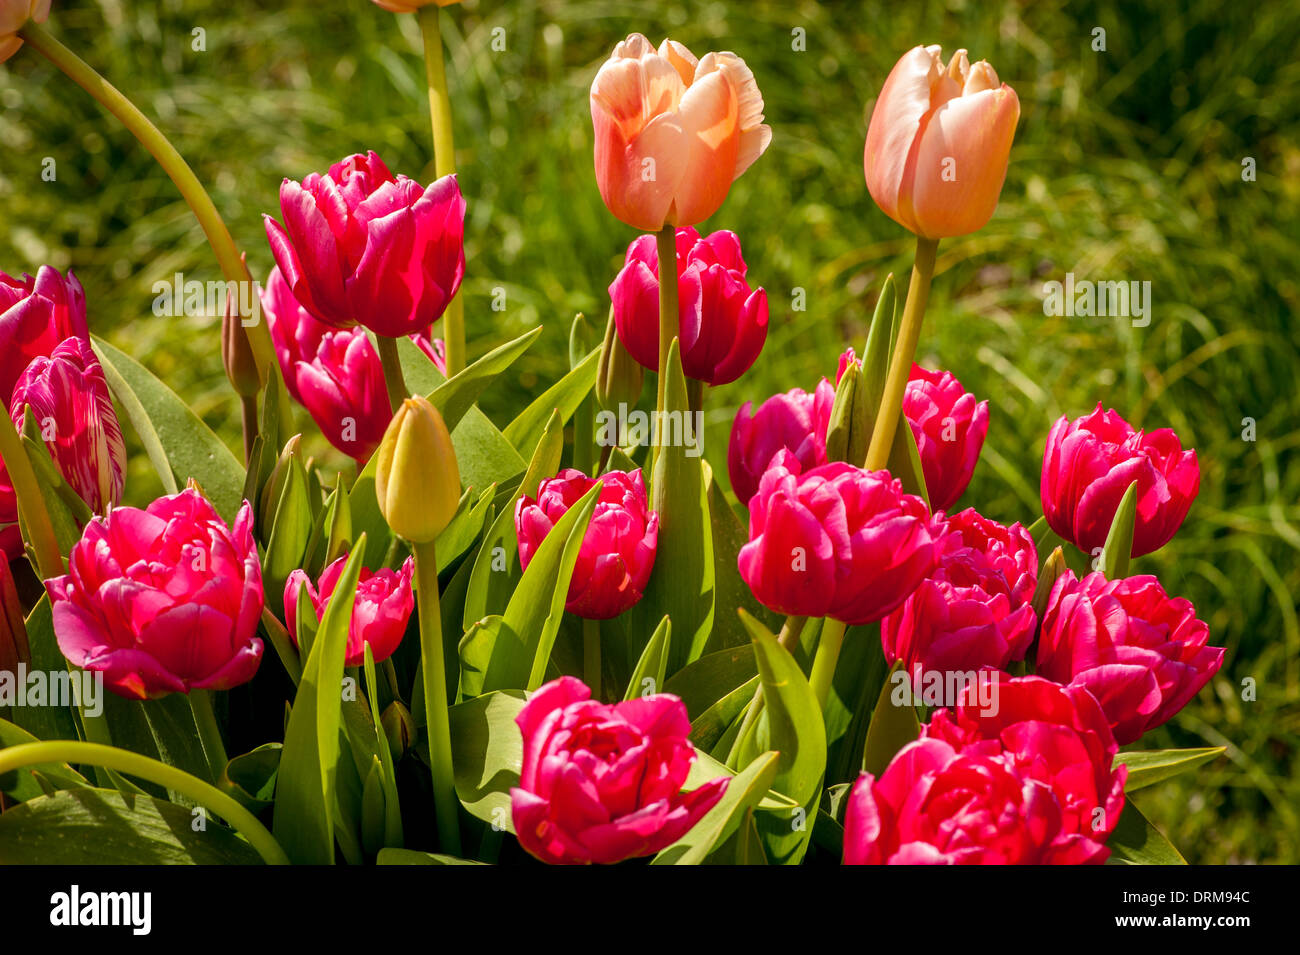 Pink and Salmon tulips - Stock Image